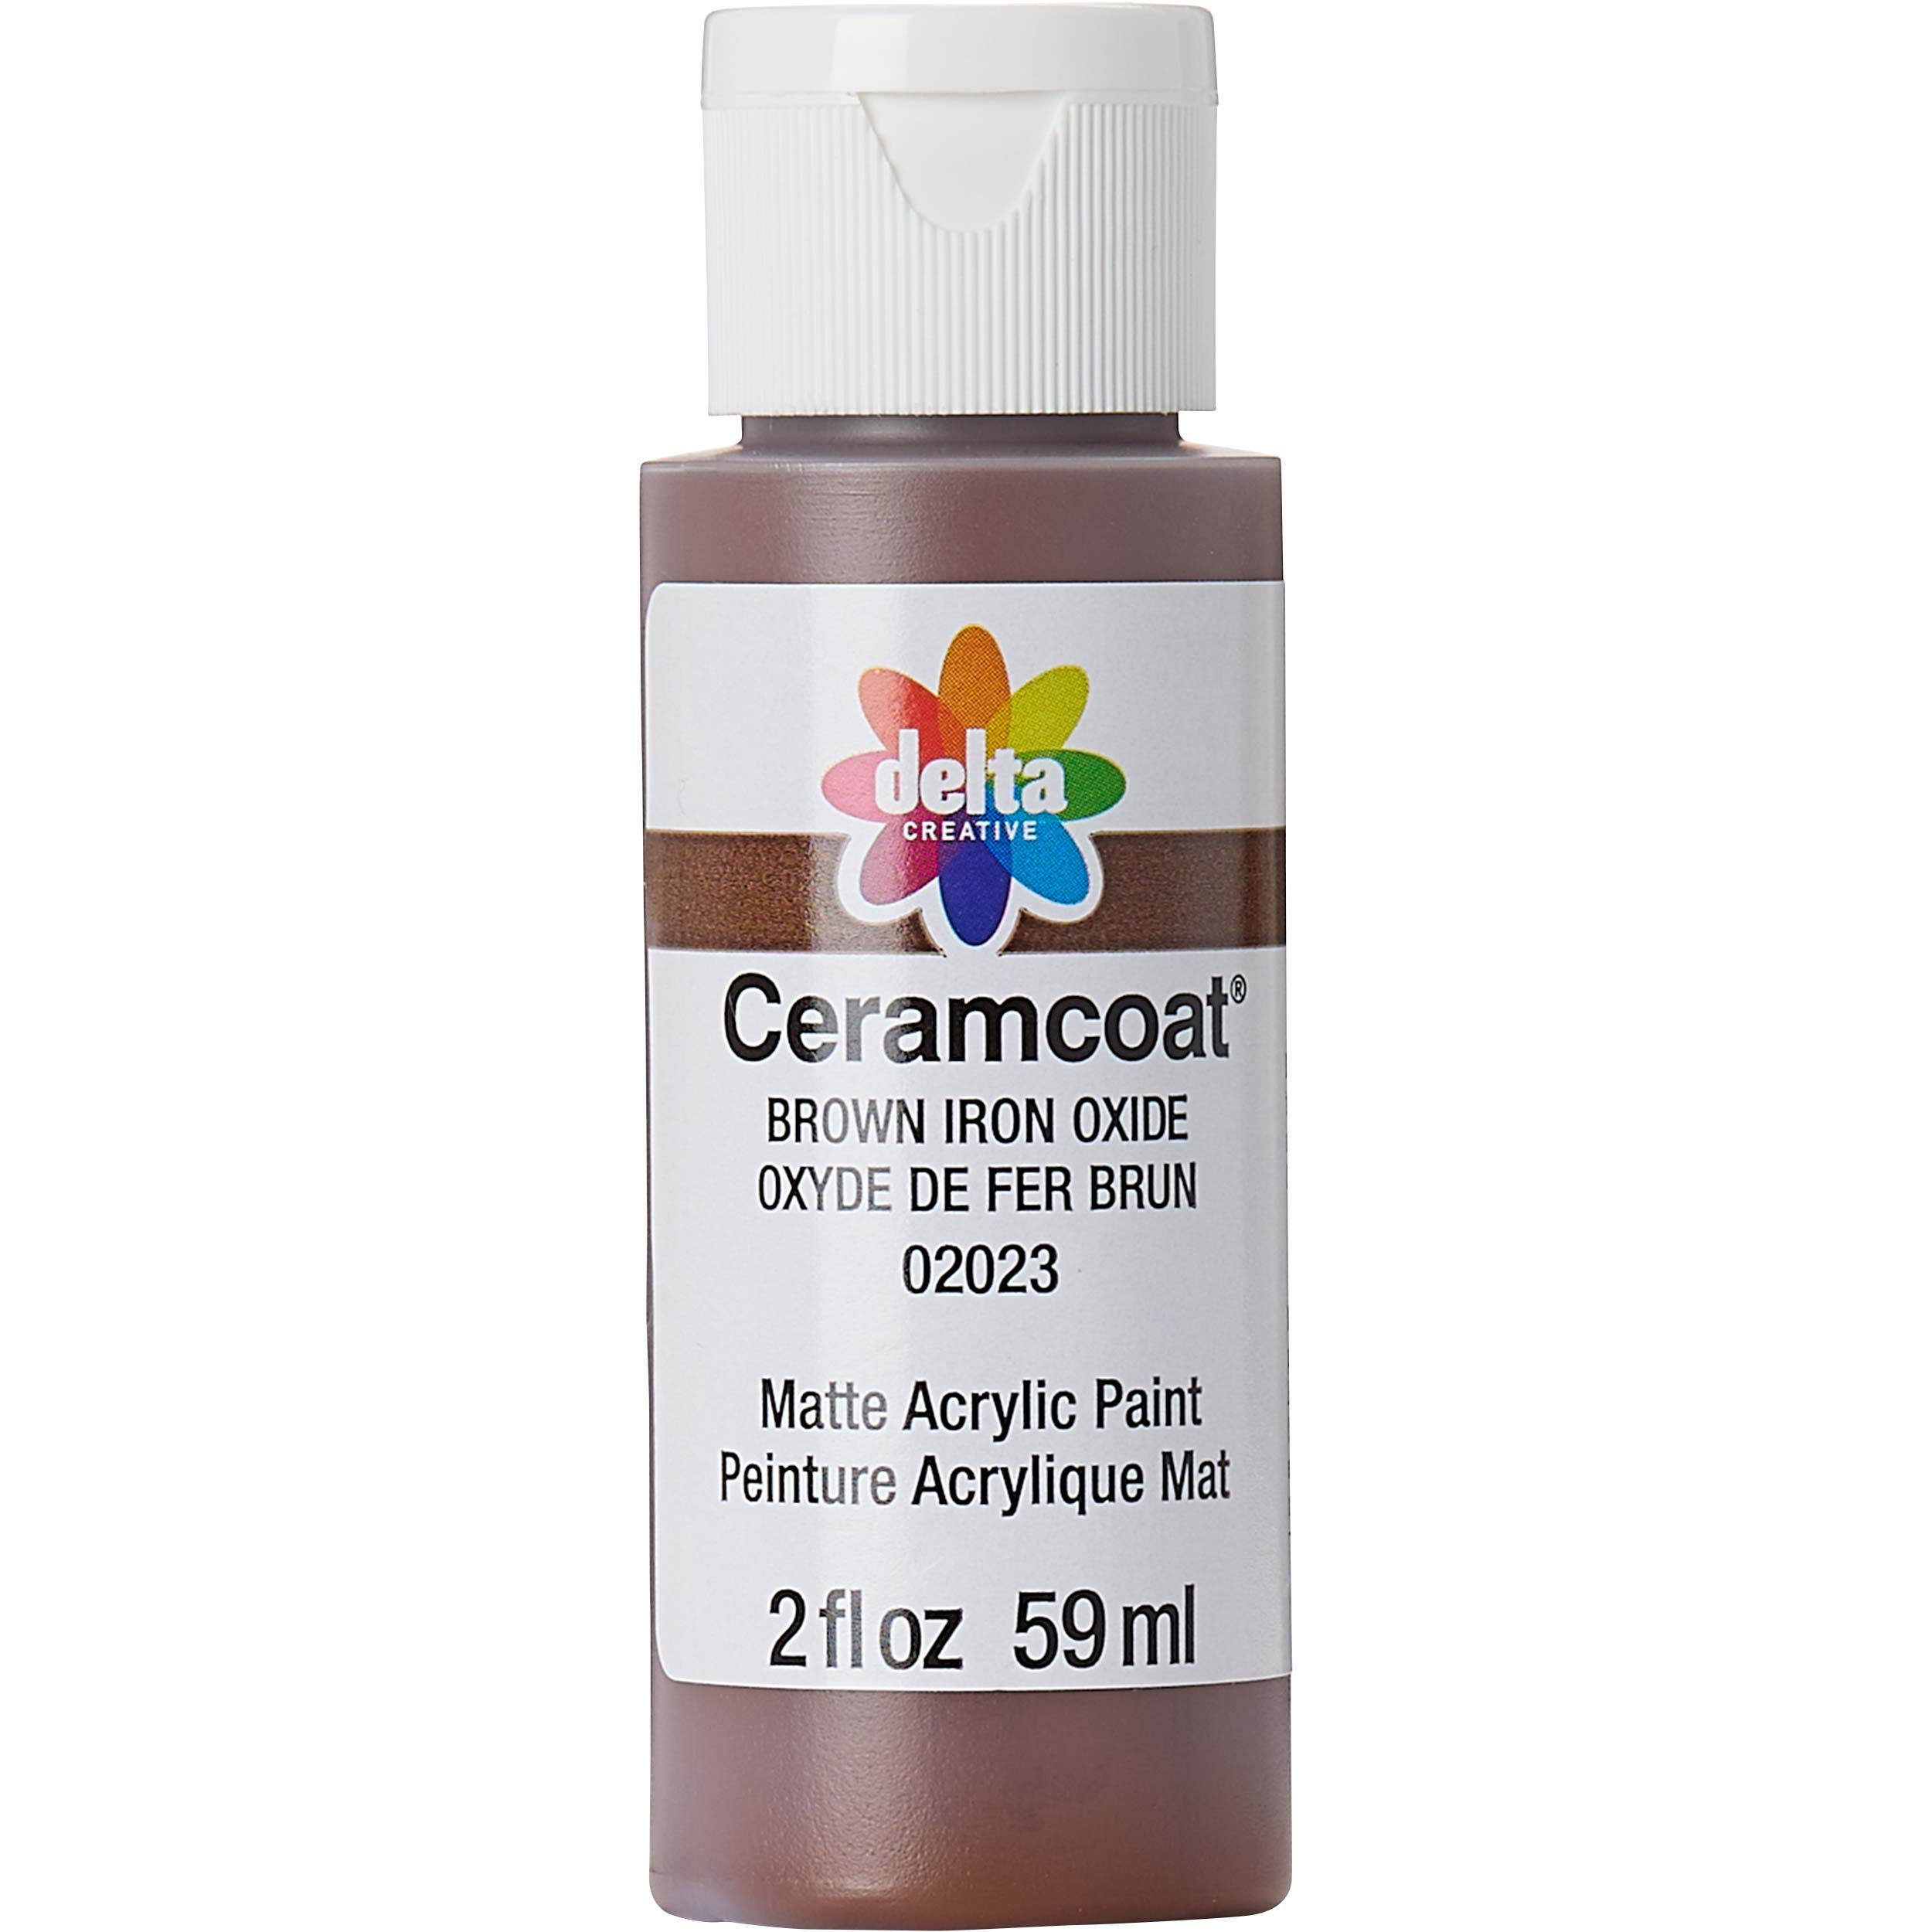 Delta Ceramcoat ® Acrylic Paint - Brown Iron Oxide, 2 oz. - 020230202W